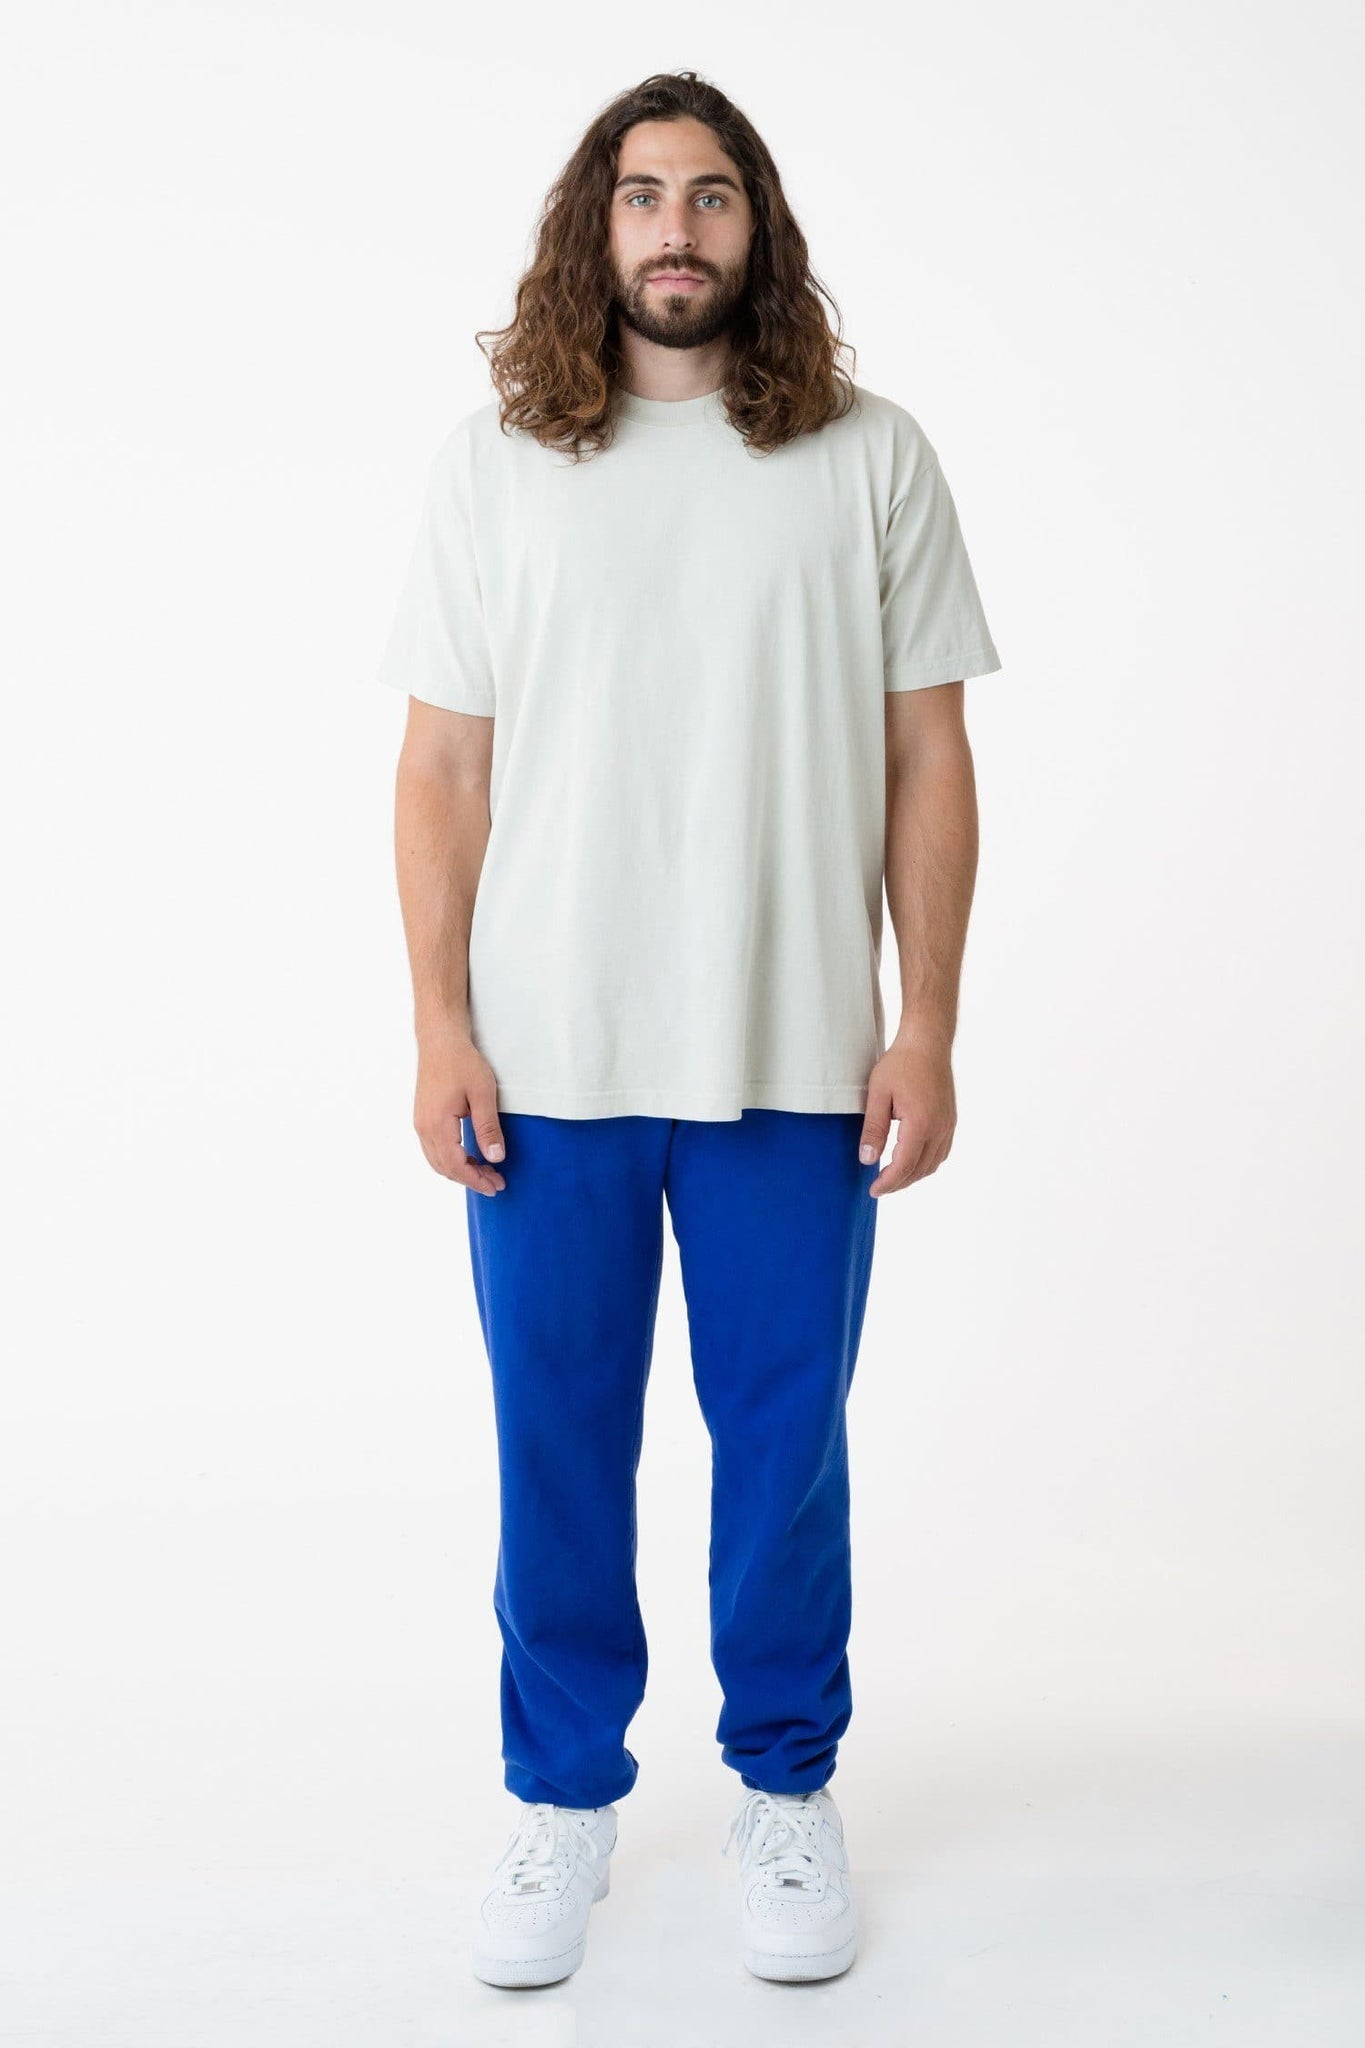 HF04GD - Garment Dye Heavy Fleece Sweatpant